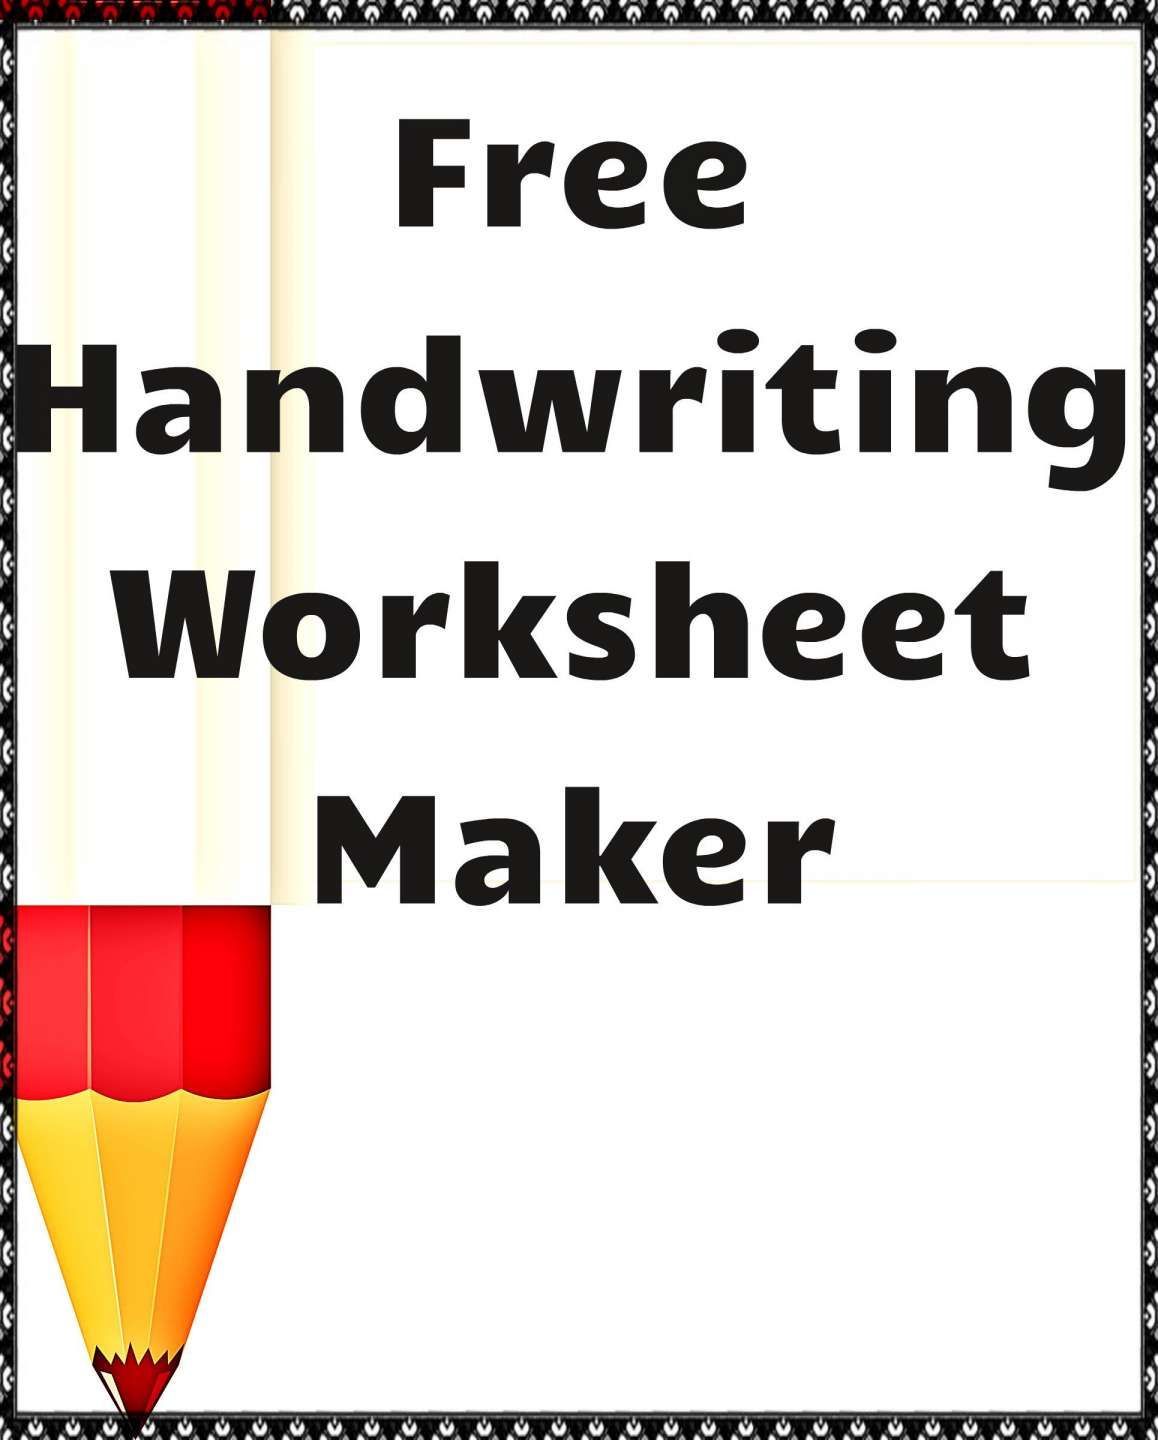 12 Free Handwriting Worksheet Maker Kindergarten